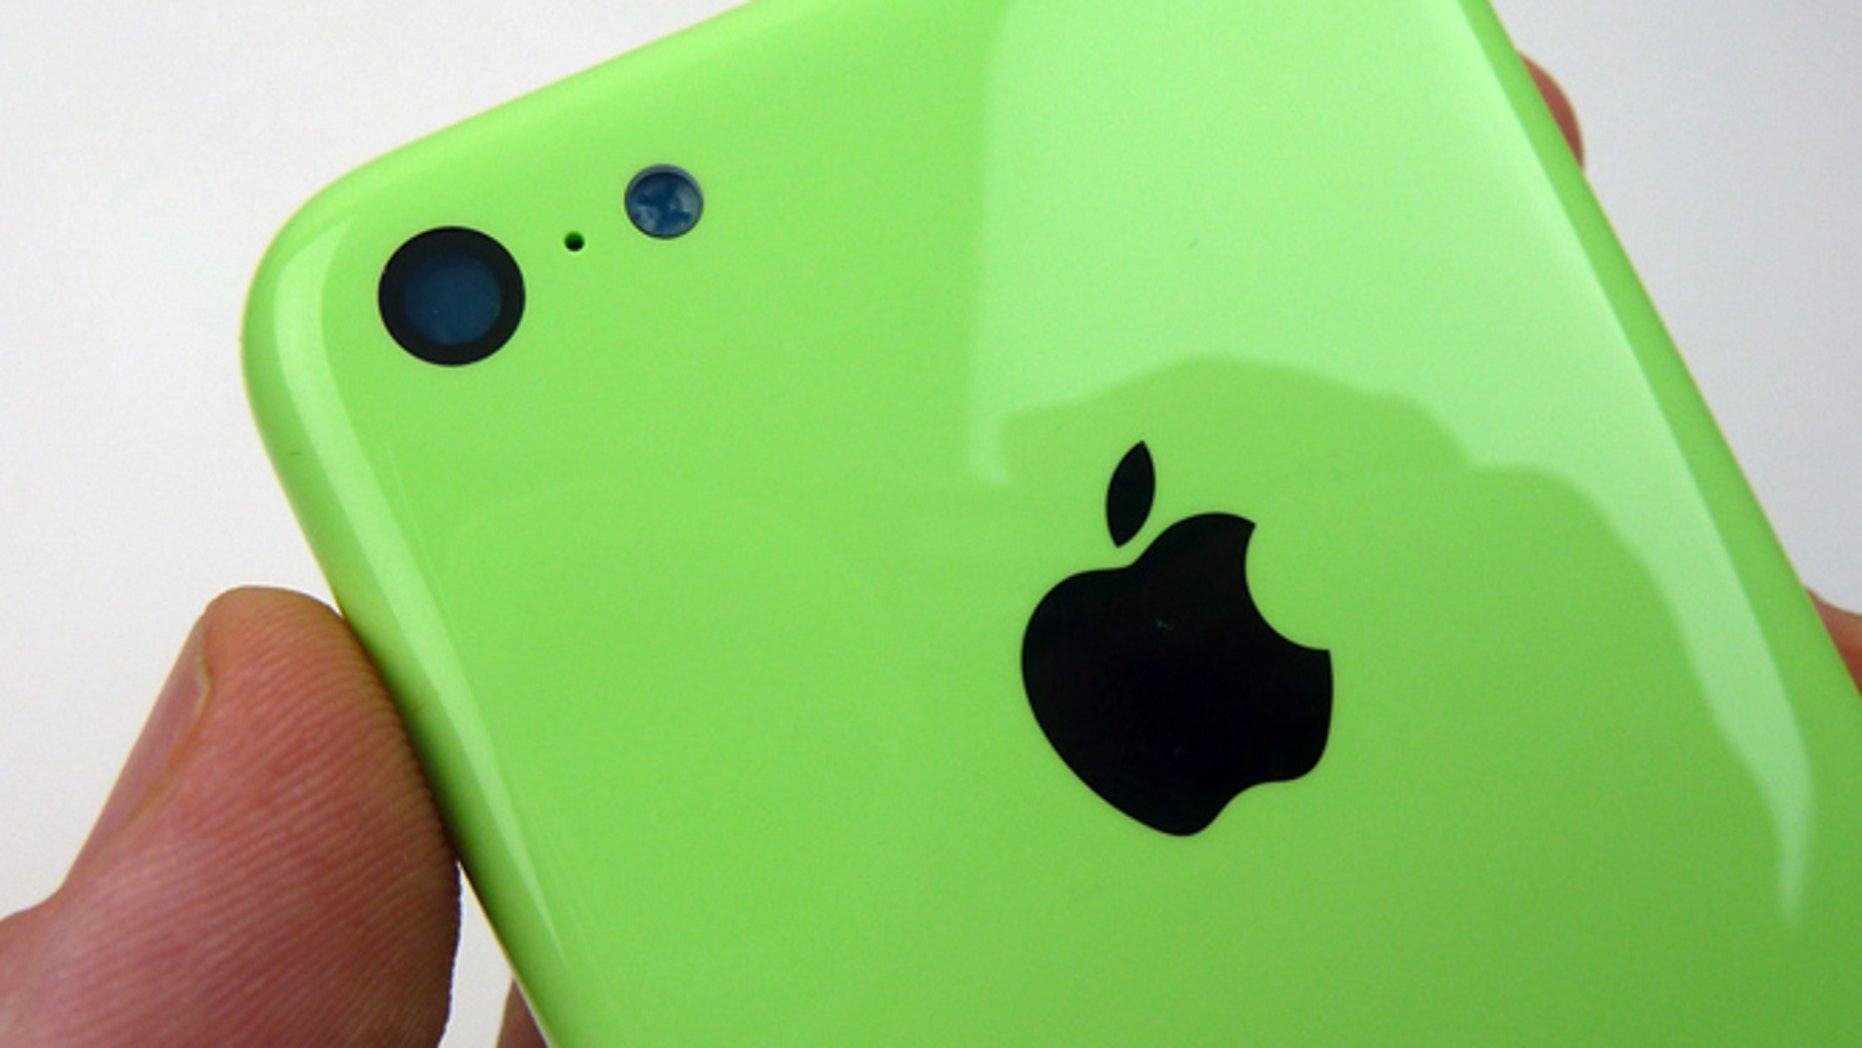 "The brightly colored housing of an iPhone 5C -- according to <a href=""http://www.sonnydickson.com/2013/08/11/gallery-green-iphone-5c-back-housing/"">Apple enthusiast Sonny Dickson</a>."